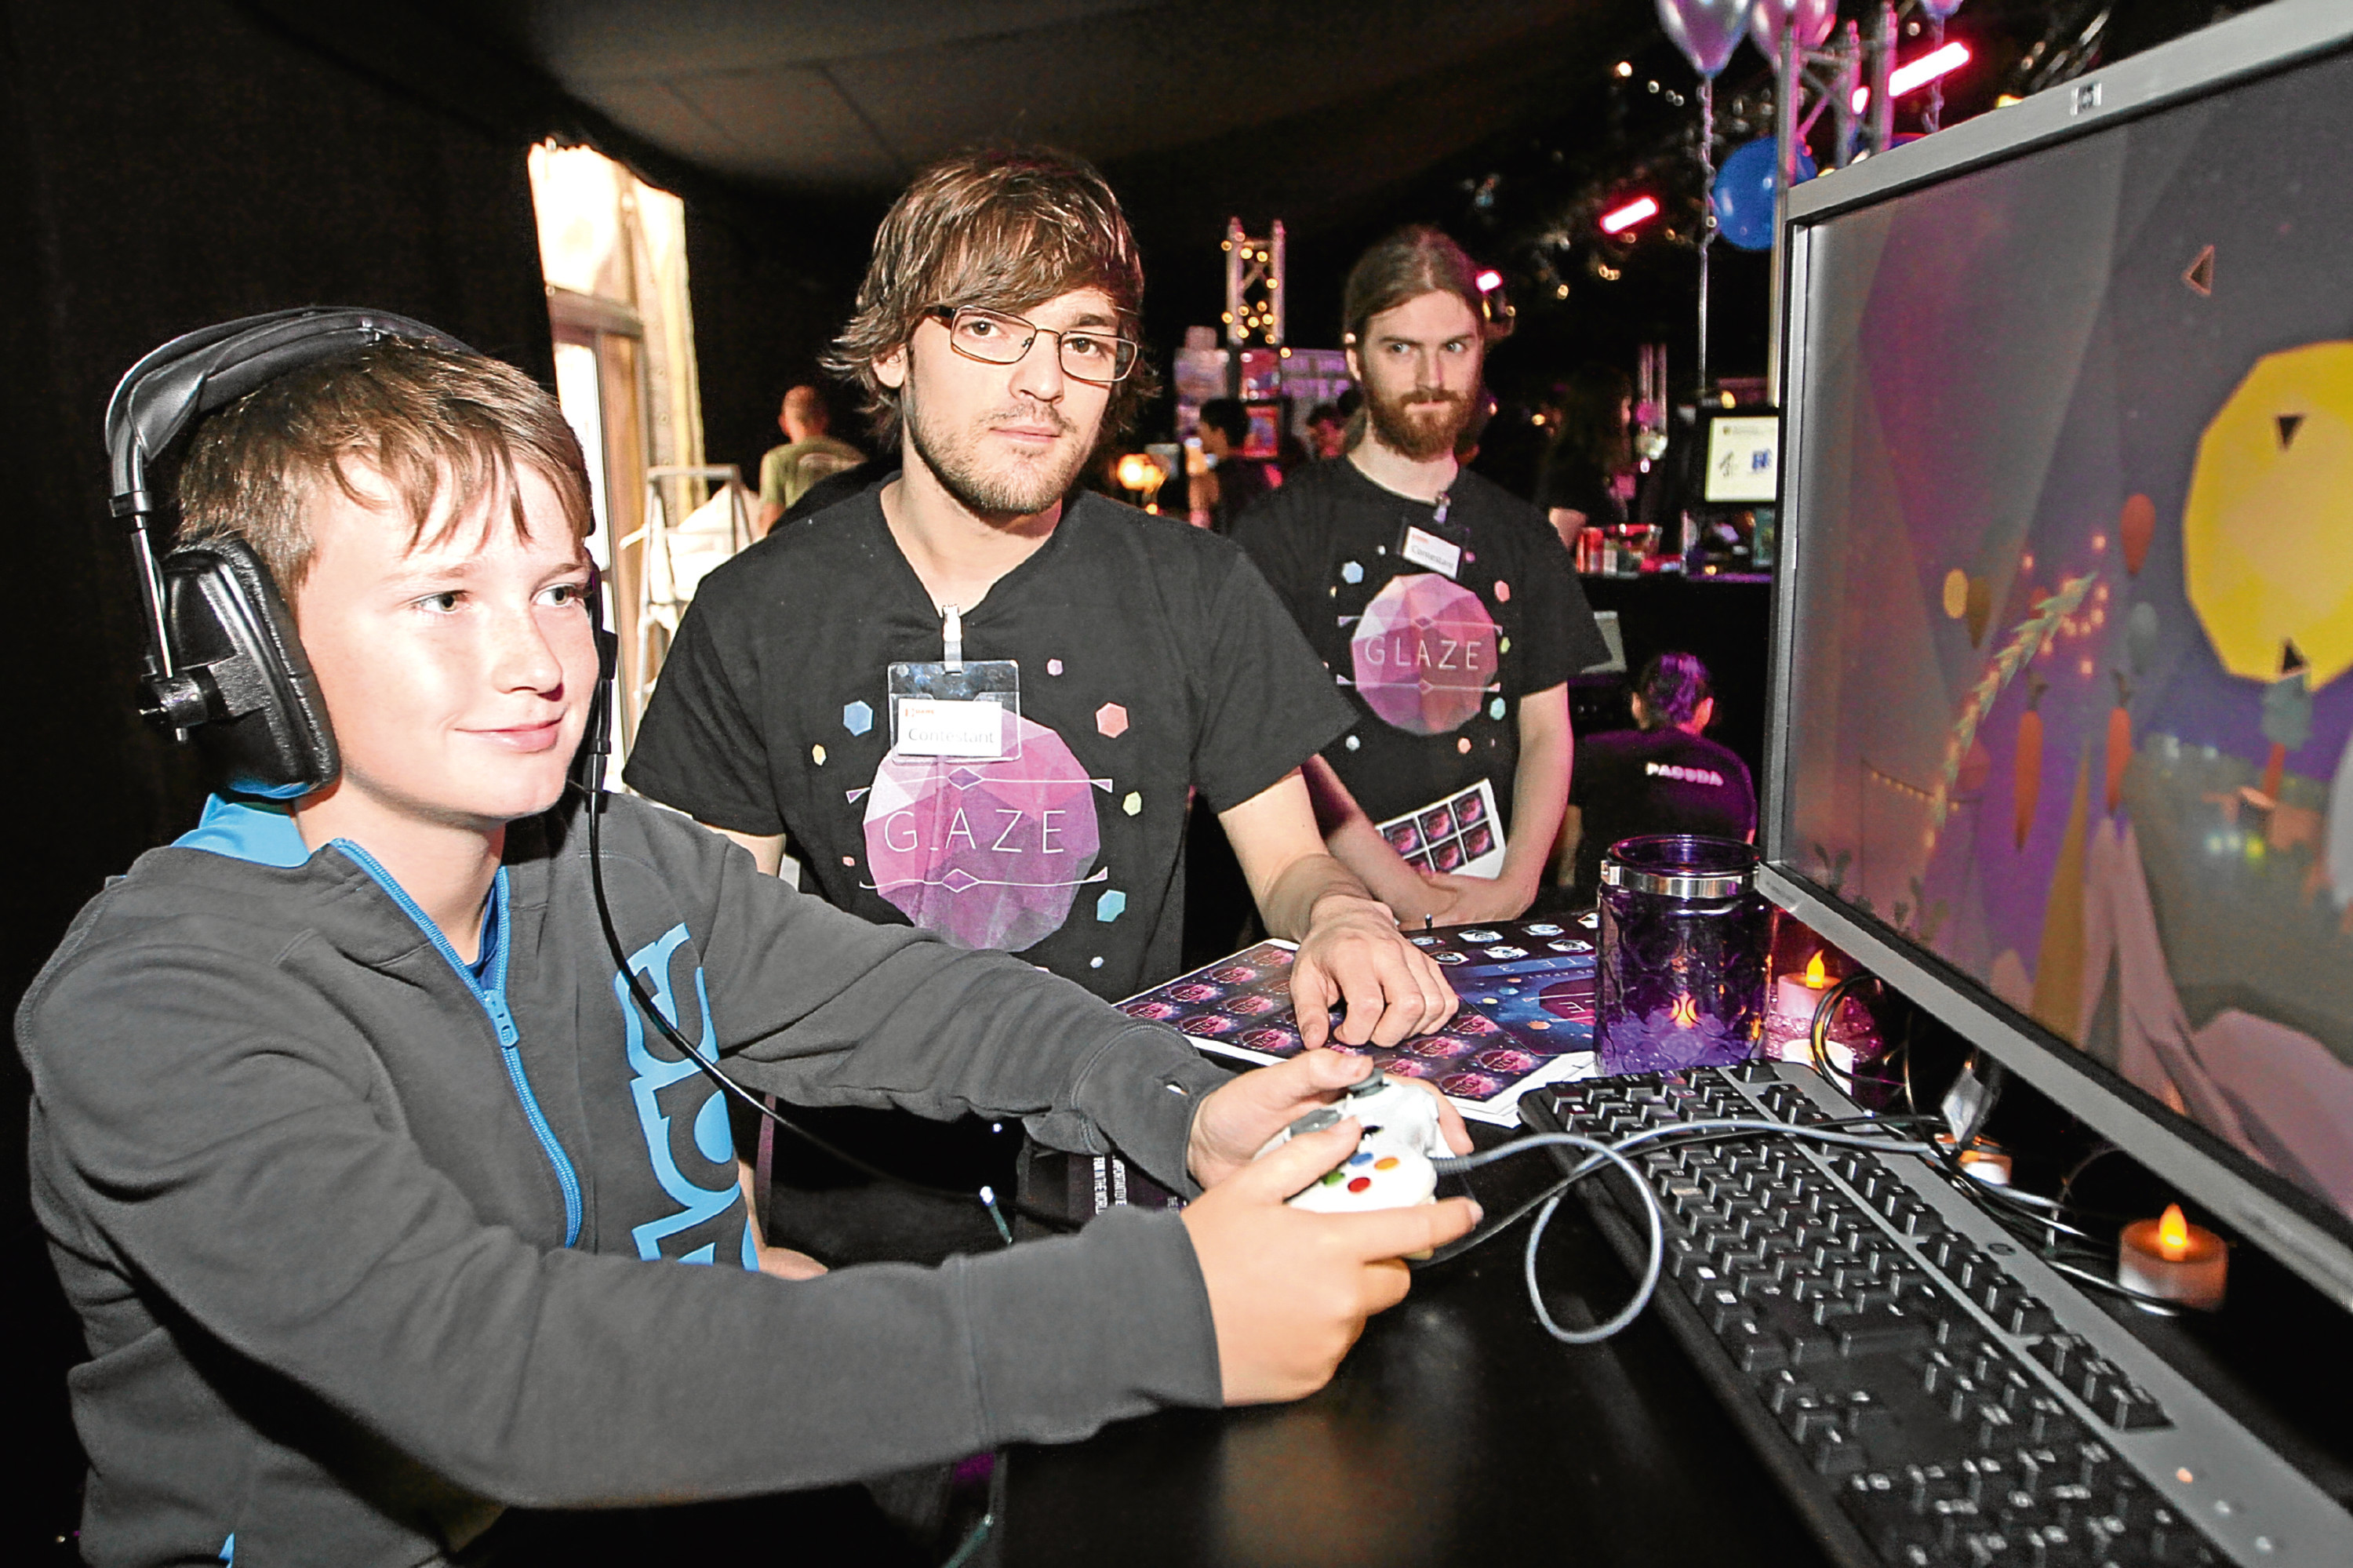 Young  fan Ross Craik checks out a new game at the 2016 Dare Proptoplay festival in Dundee